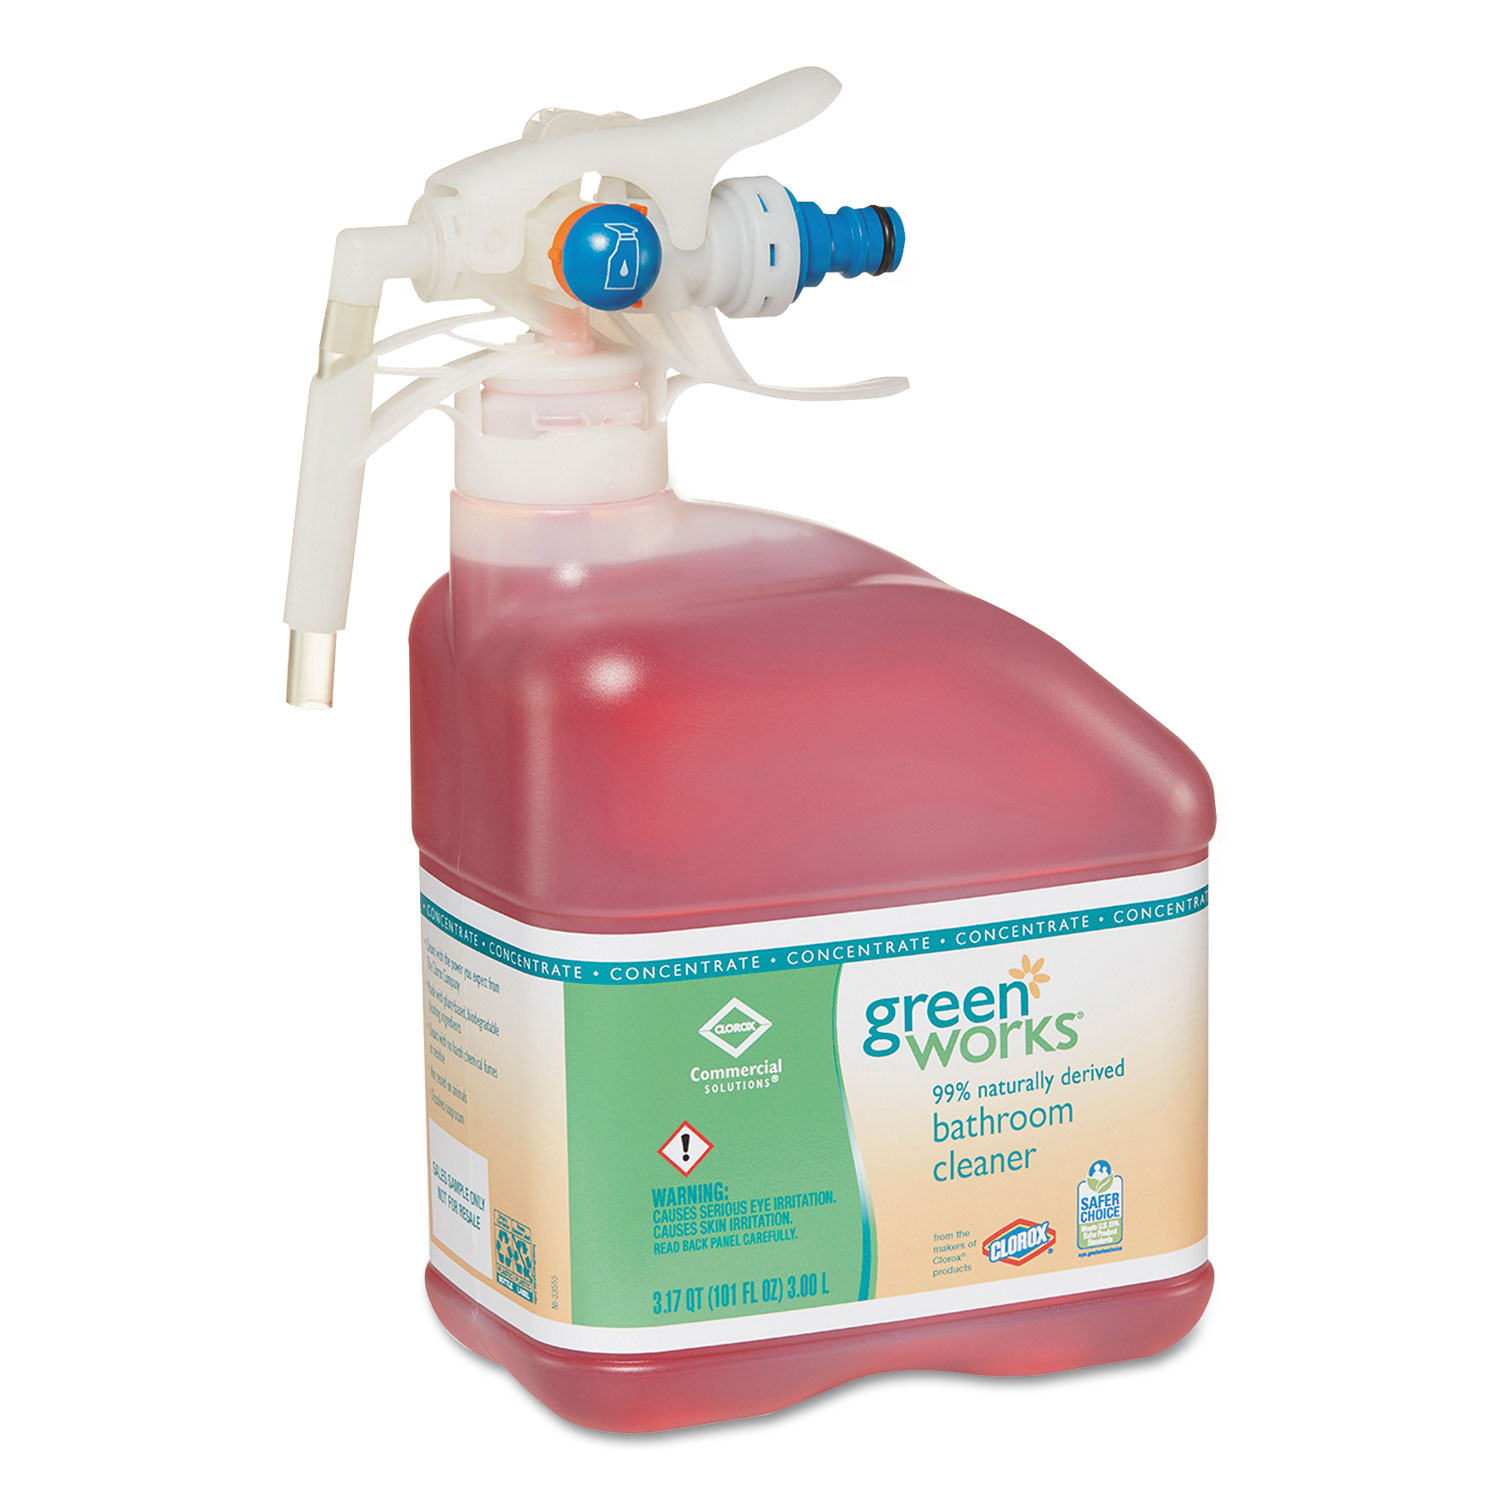 Green Bathroom Cleaners That Work: CLO31752 Green Works Bathroom Cleaner Concentrate